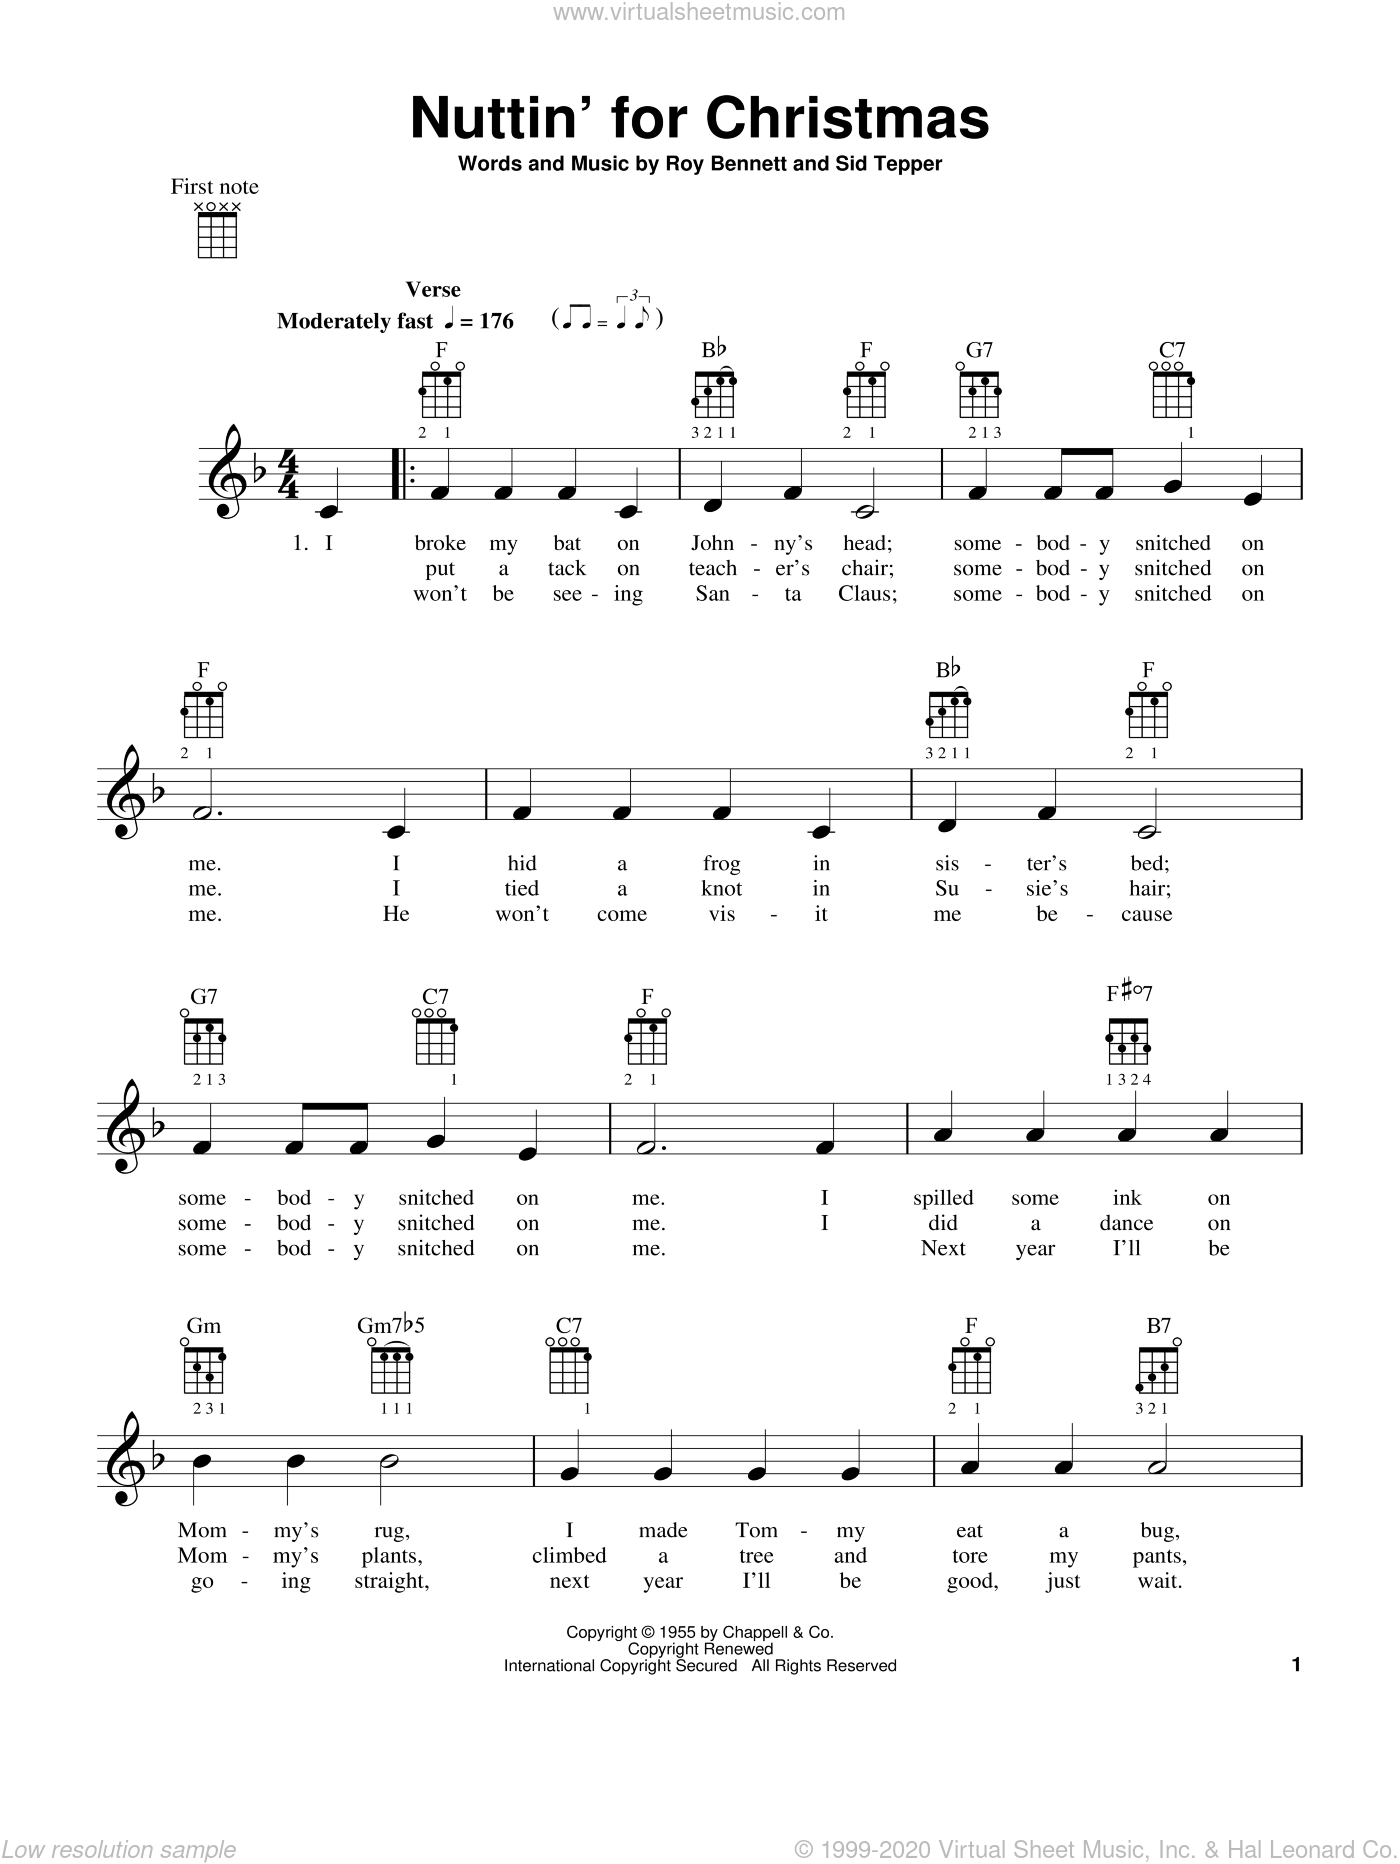 Nuttin' For Christmas sheet music for ukulele by Sid Tepper